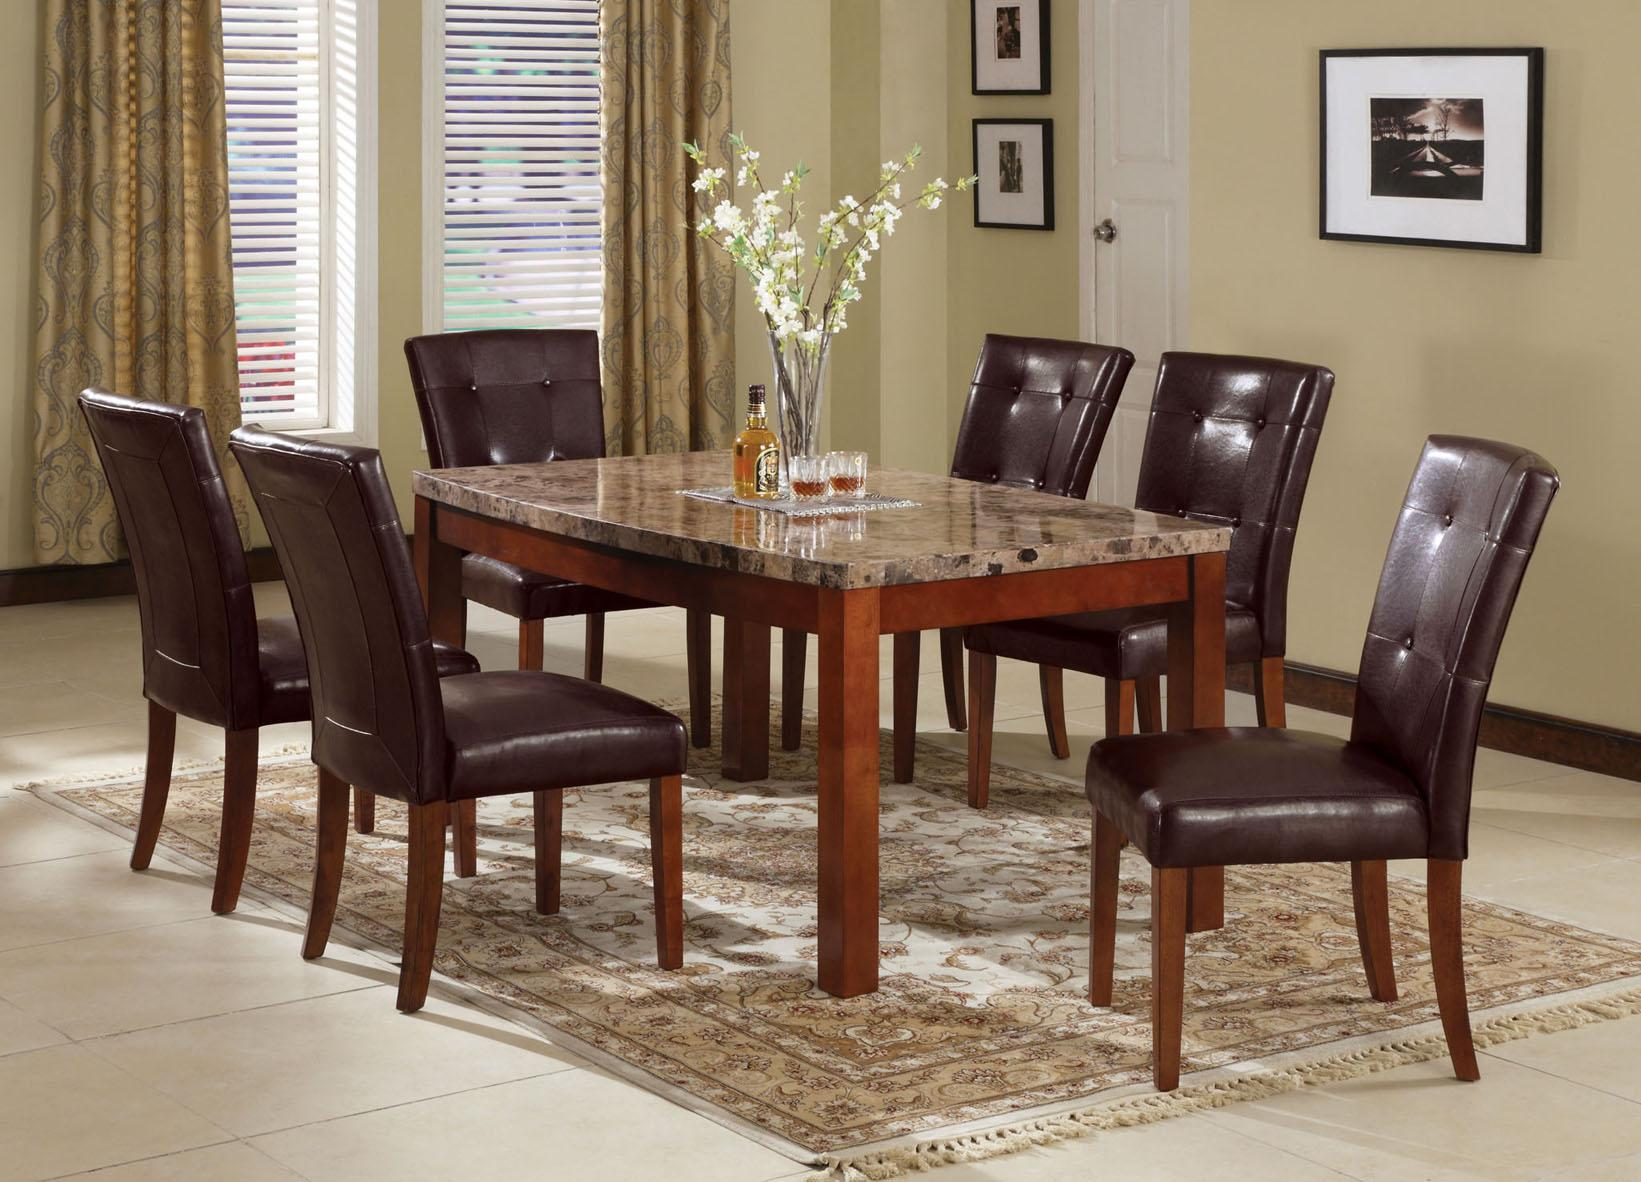 Acme Furniture Bologna 6 7 Piece Marble Top Dining Set | Rooms For Less |  Table U0026 Chair Set With Bench